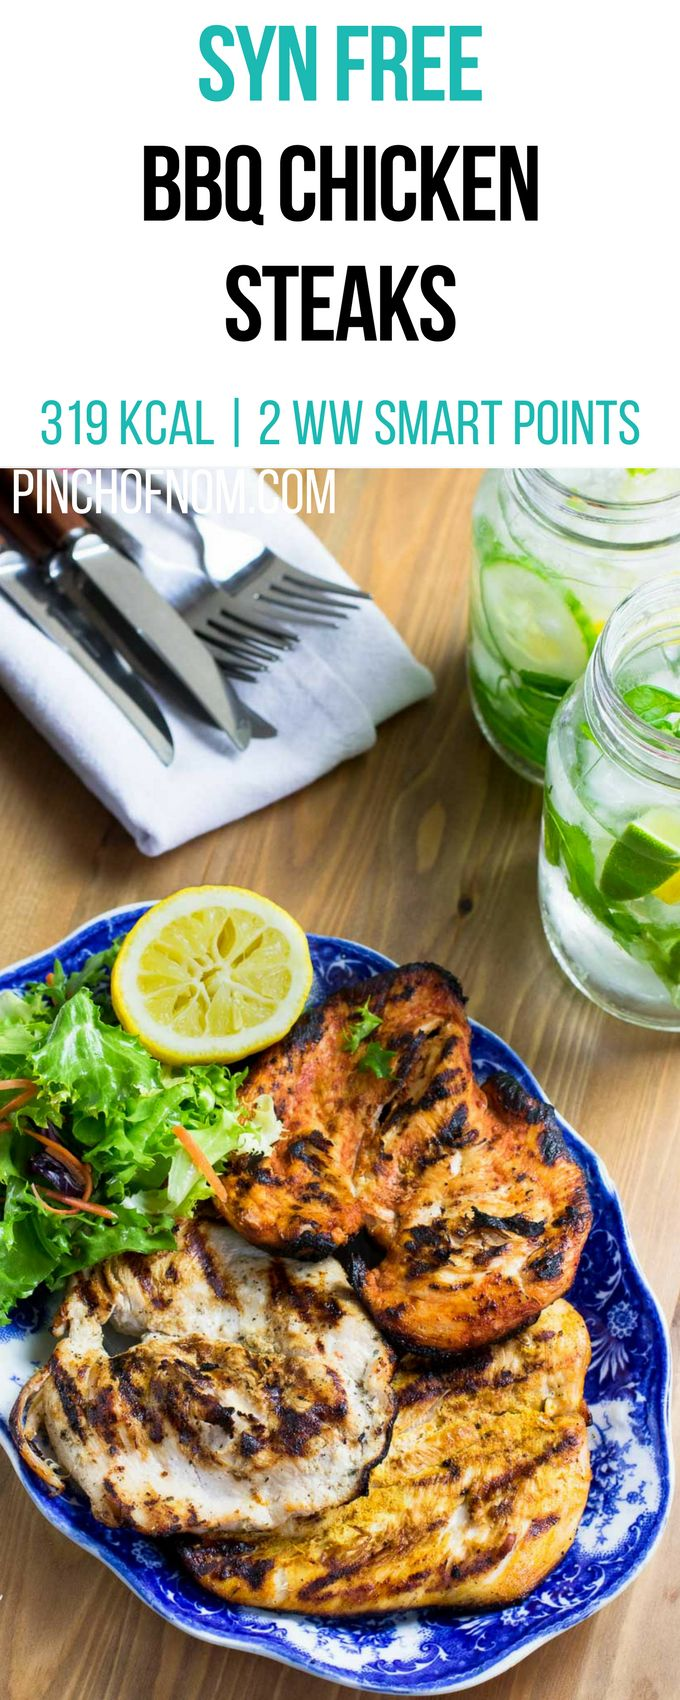 Syn Free BBQ Chicken Steaks | Pinch Of Nom Slimming World Recipes 319 kcal | Syn Free | 2 Weight Watchers Smart Points